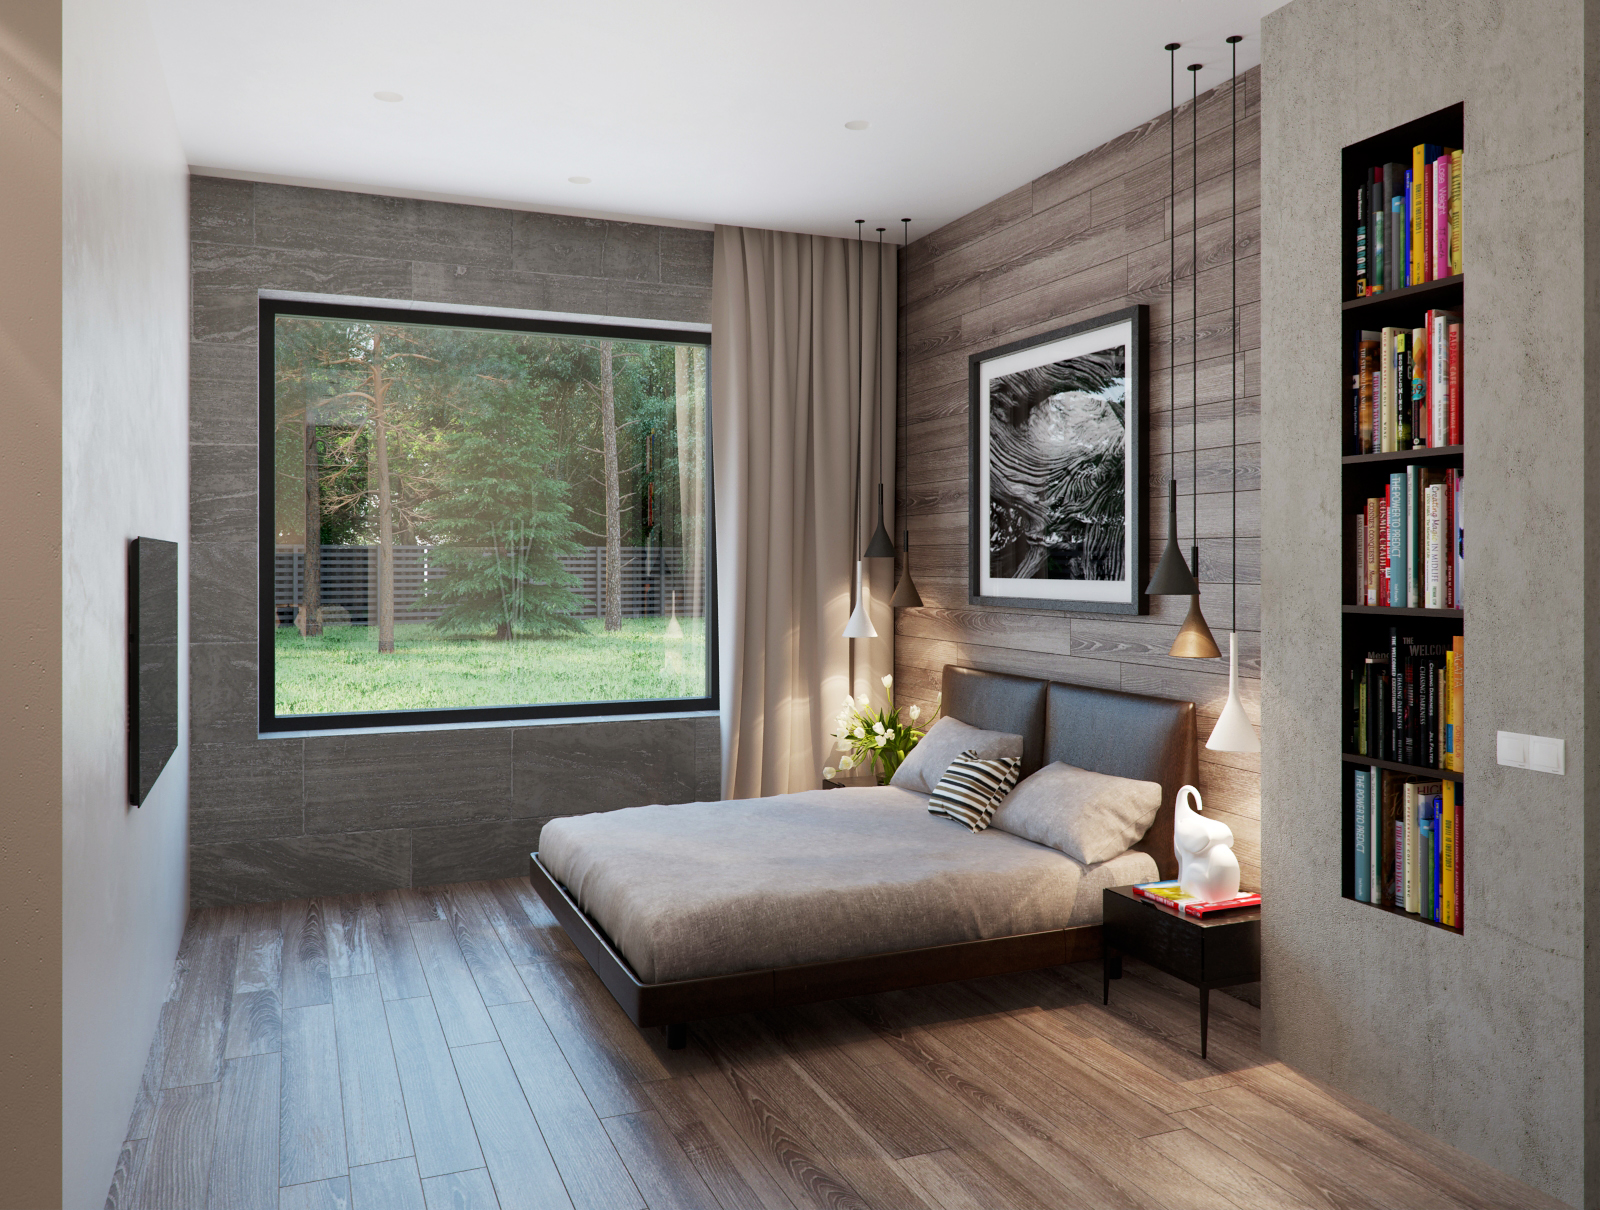 20 Best Small Modern Bedroom Ideas - Architecture Beast